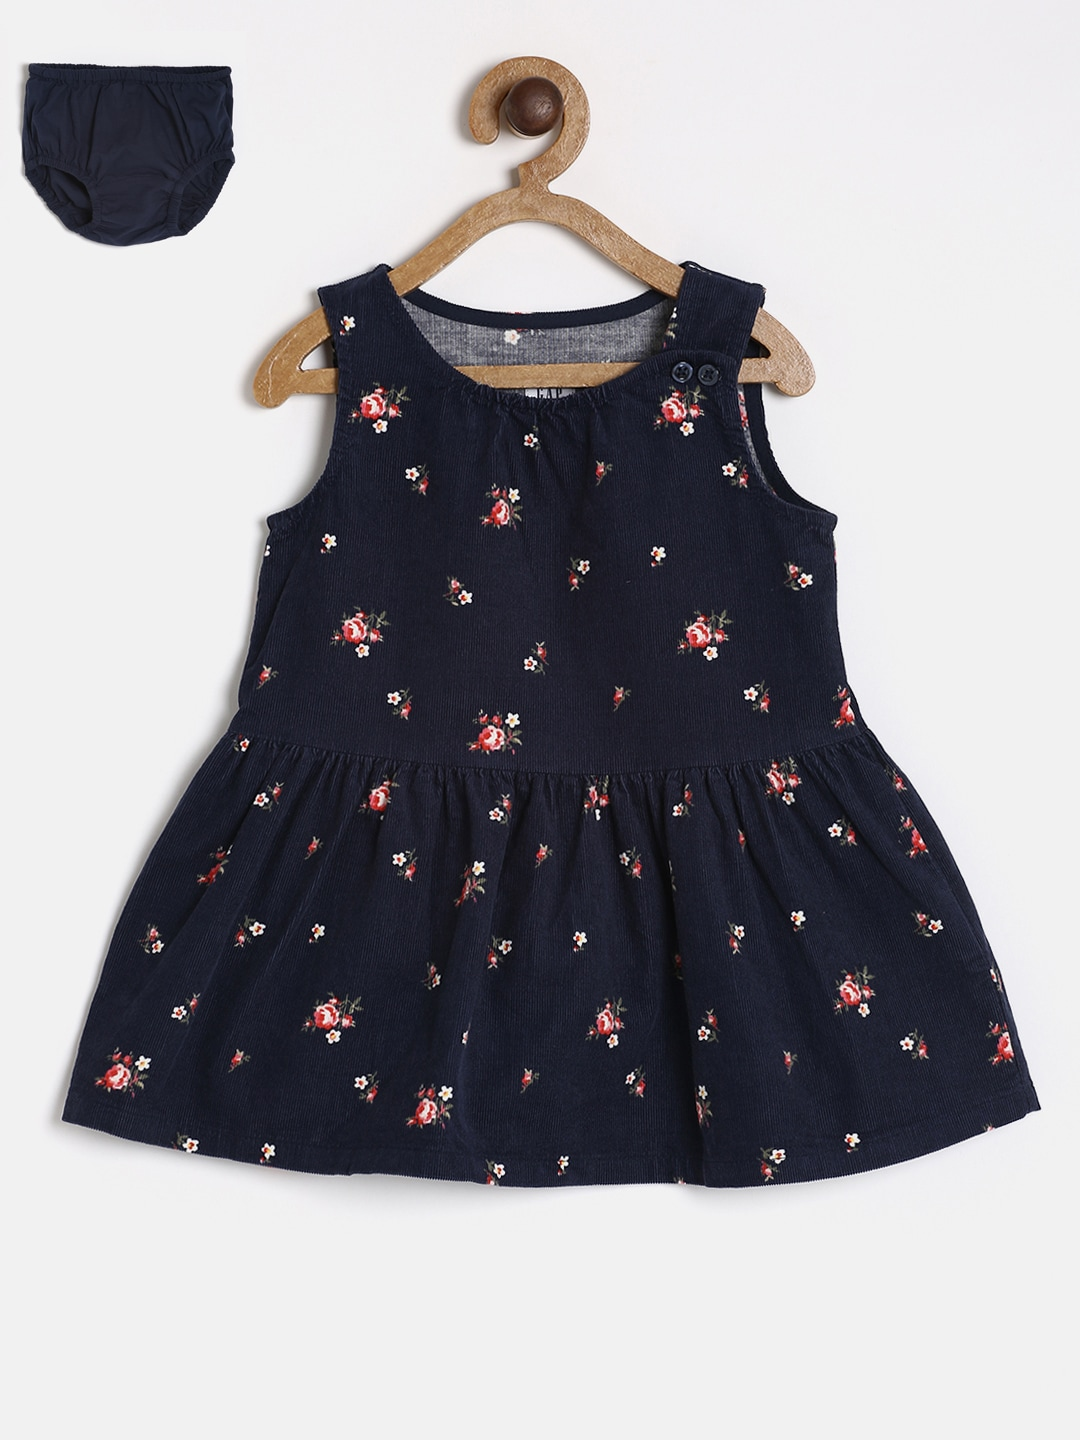 e9f33e403b57 Baby Frock - Buy Frocks for Girls Online in India